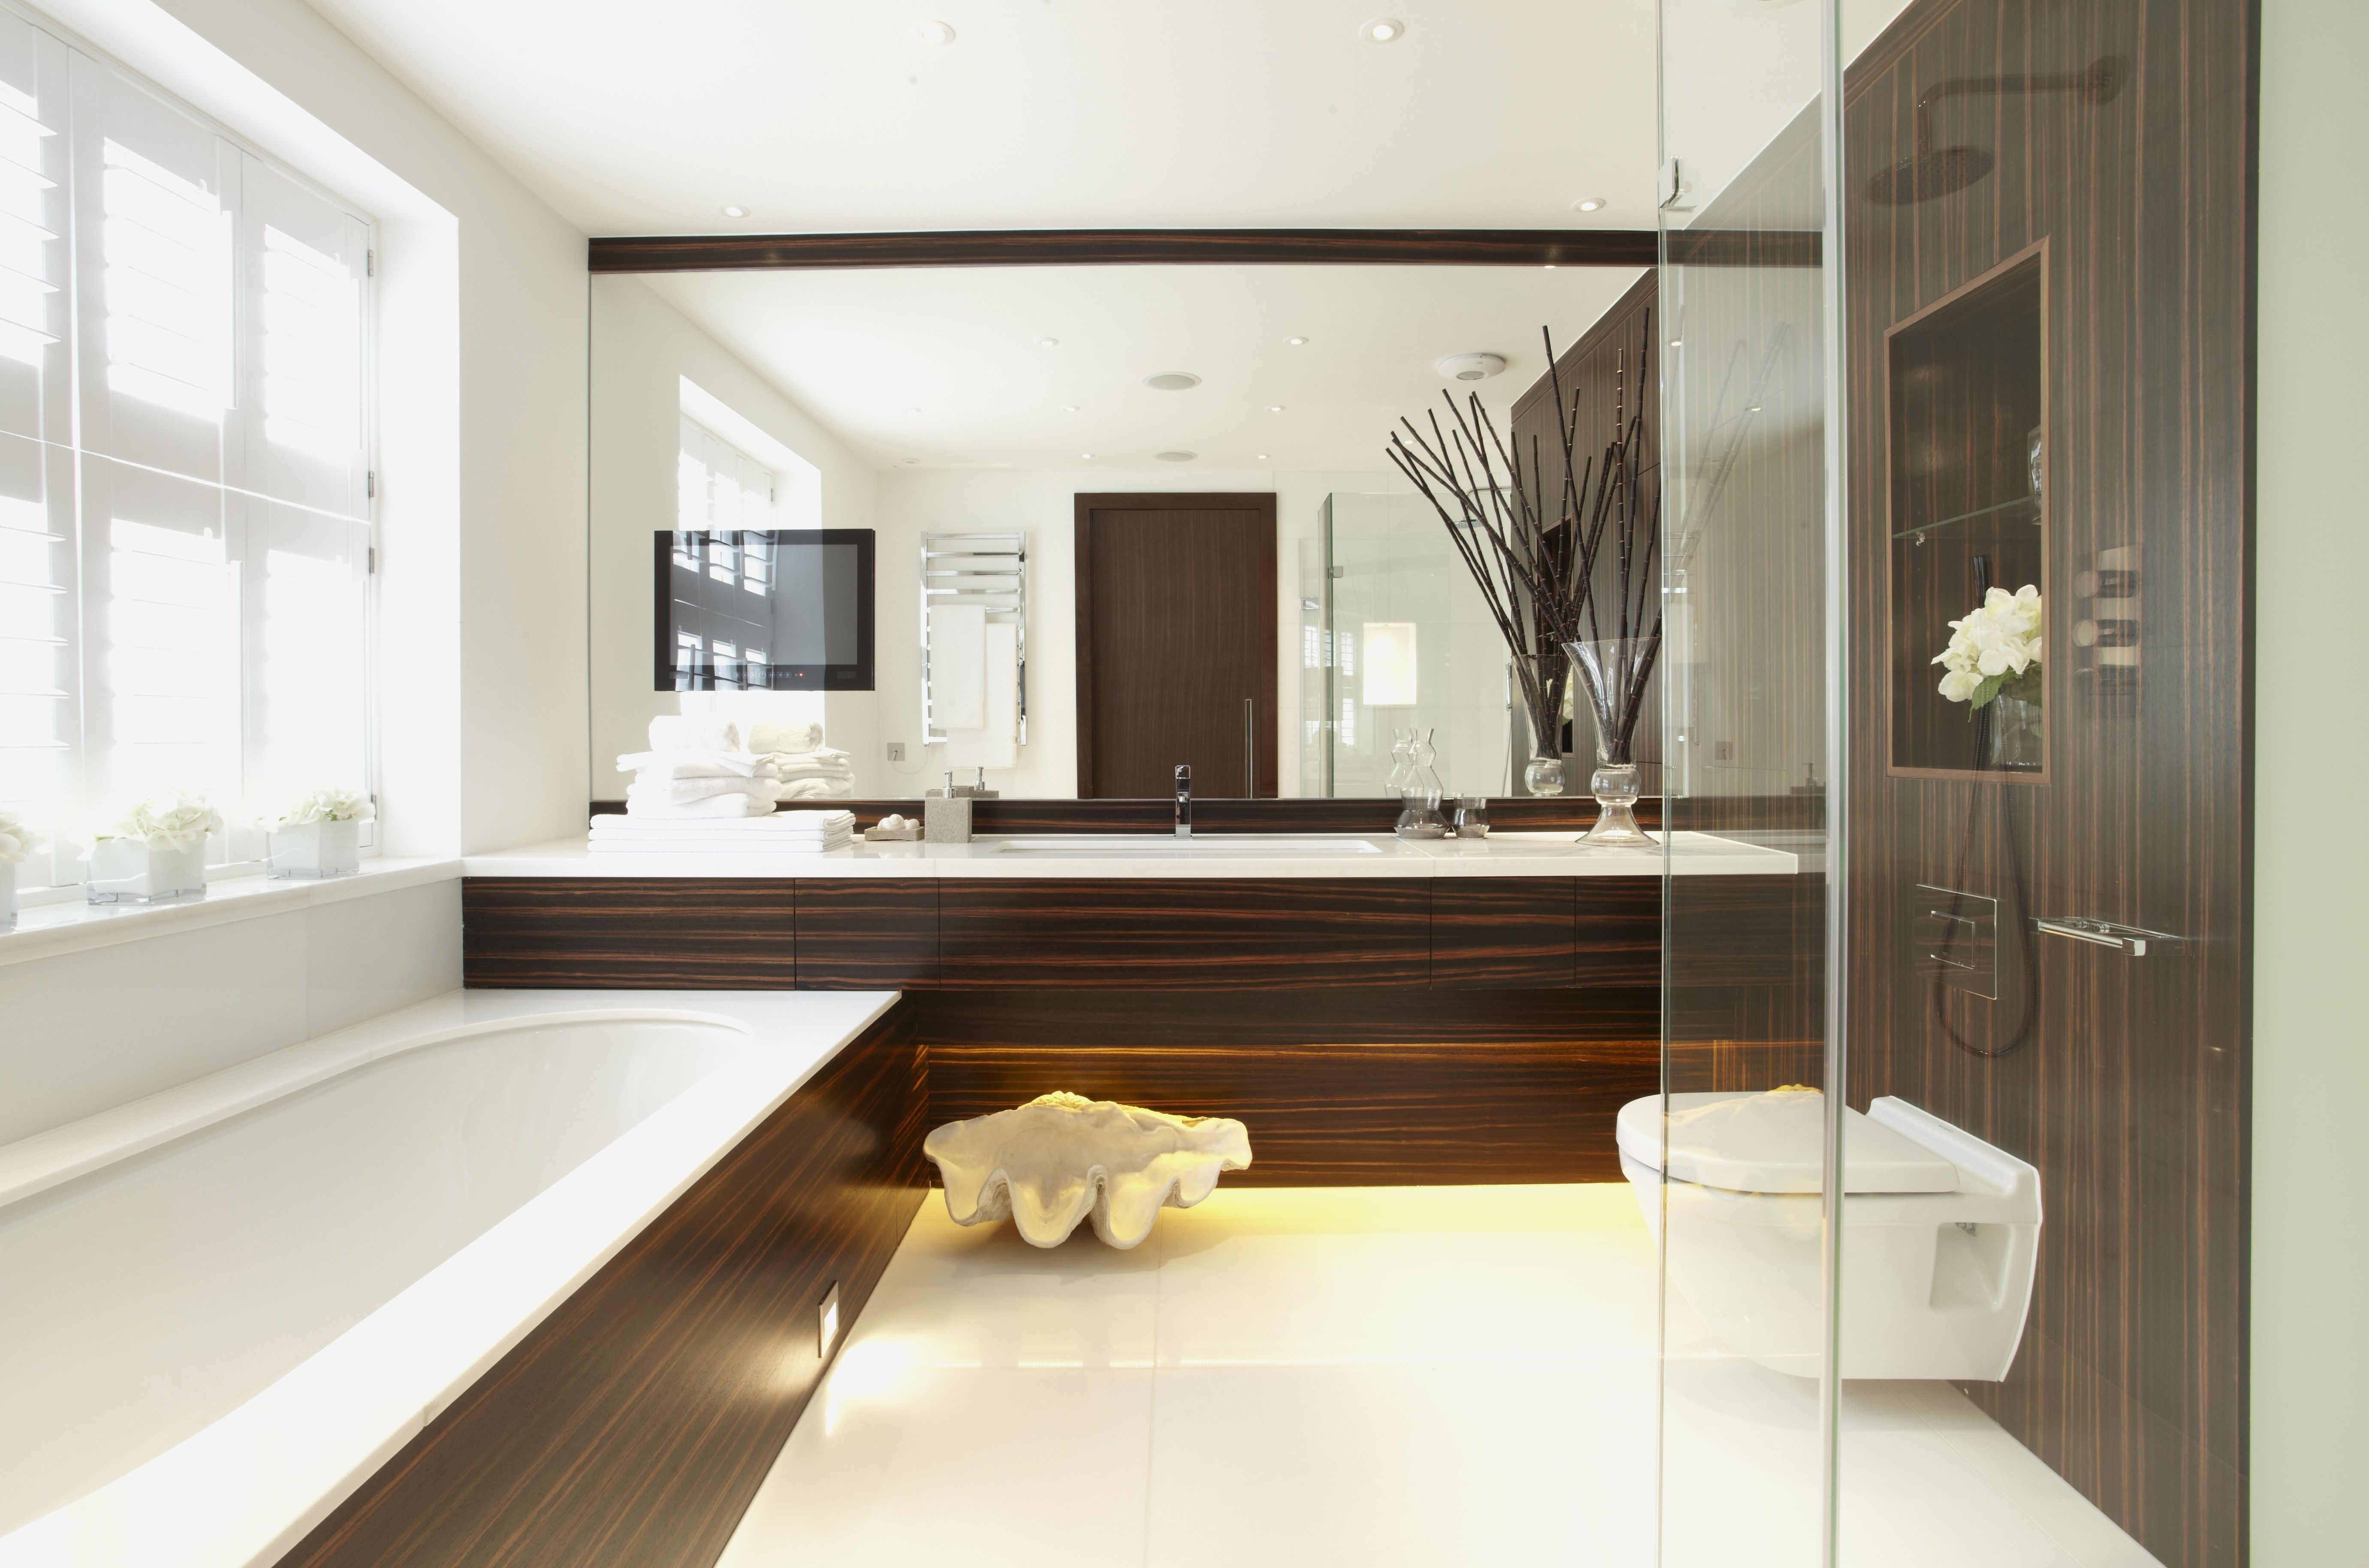 Design House Kitchen And Bath Raleigh Nc